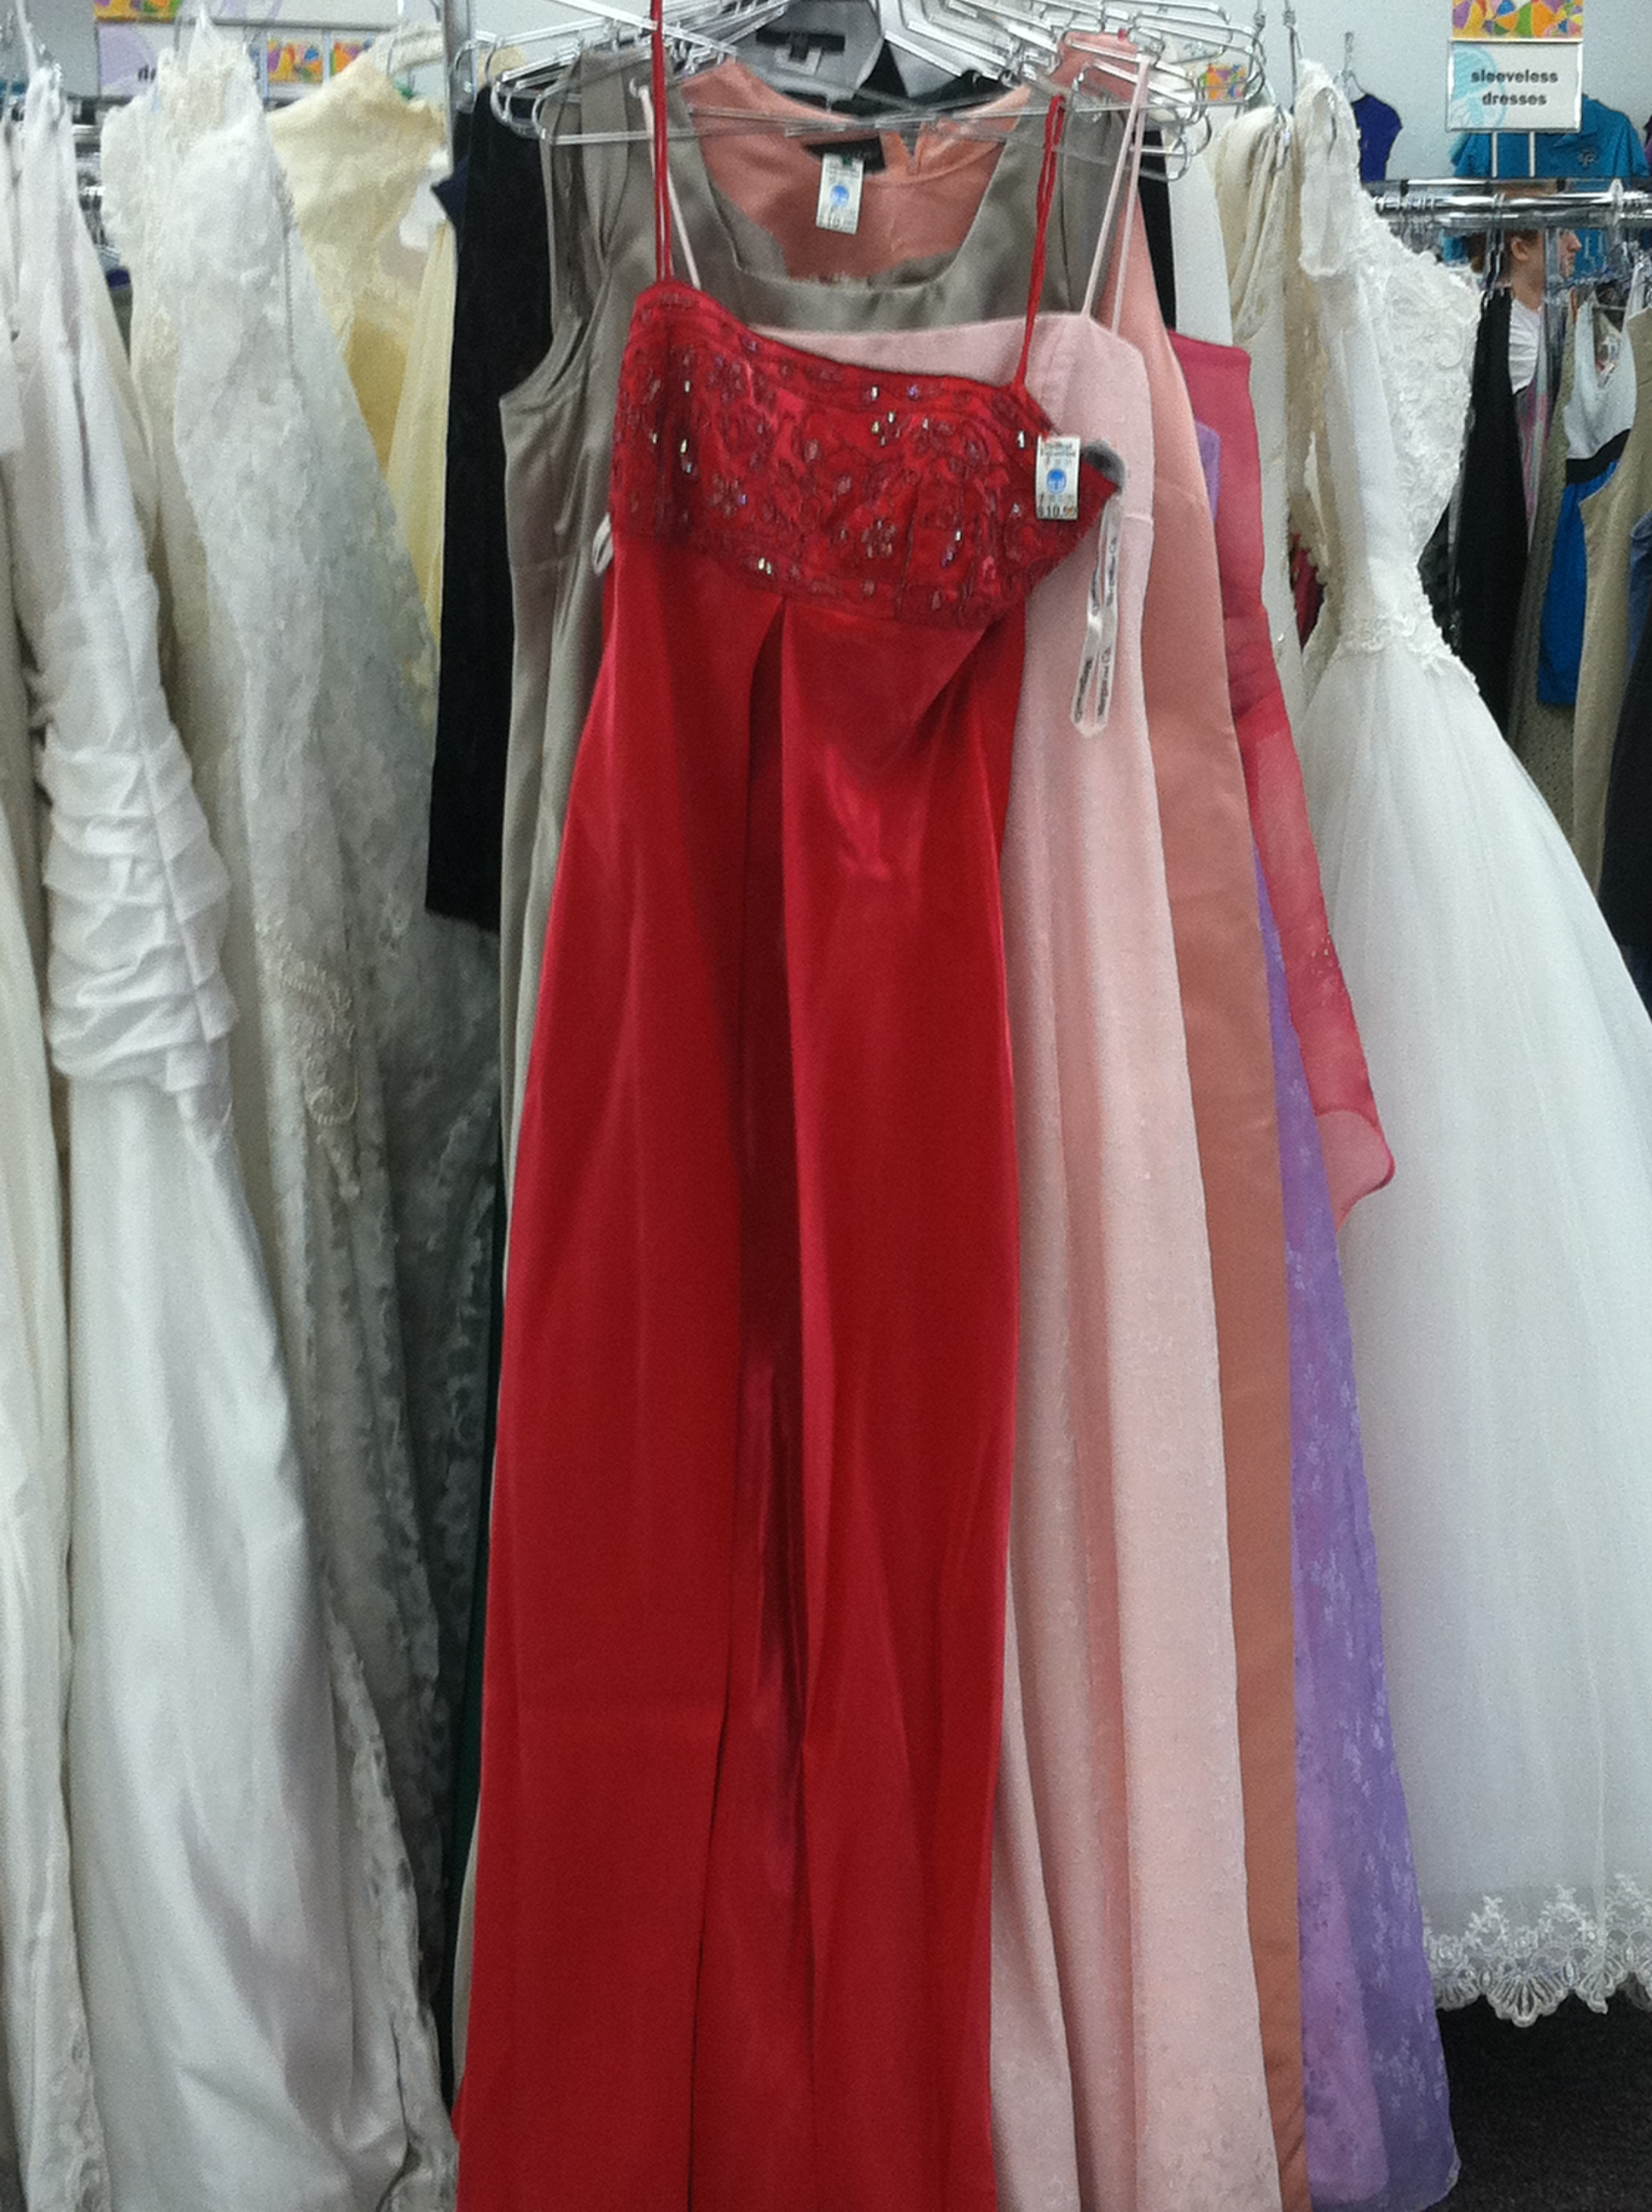 thrift store Archives -